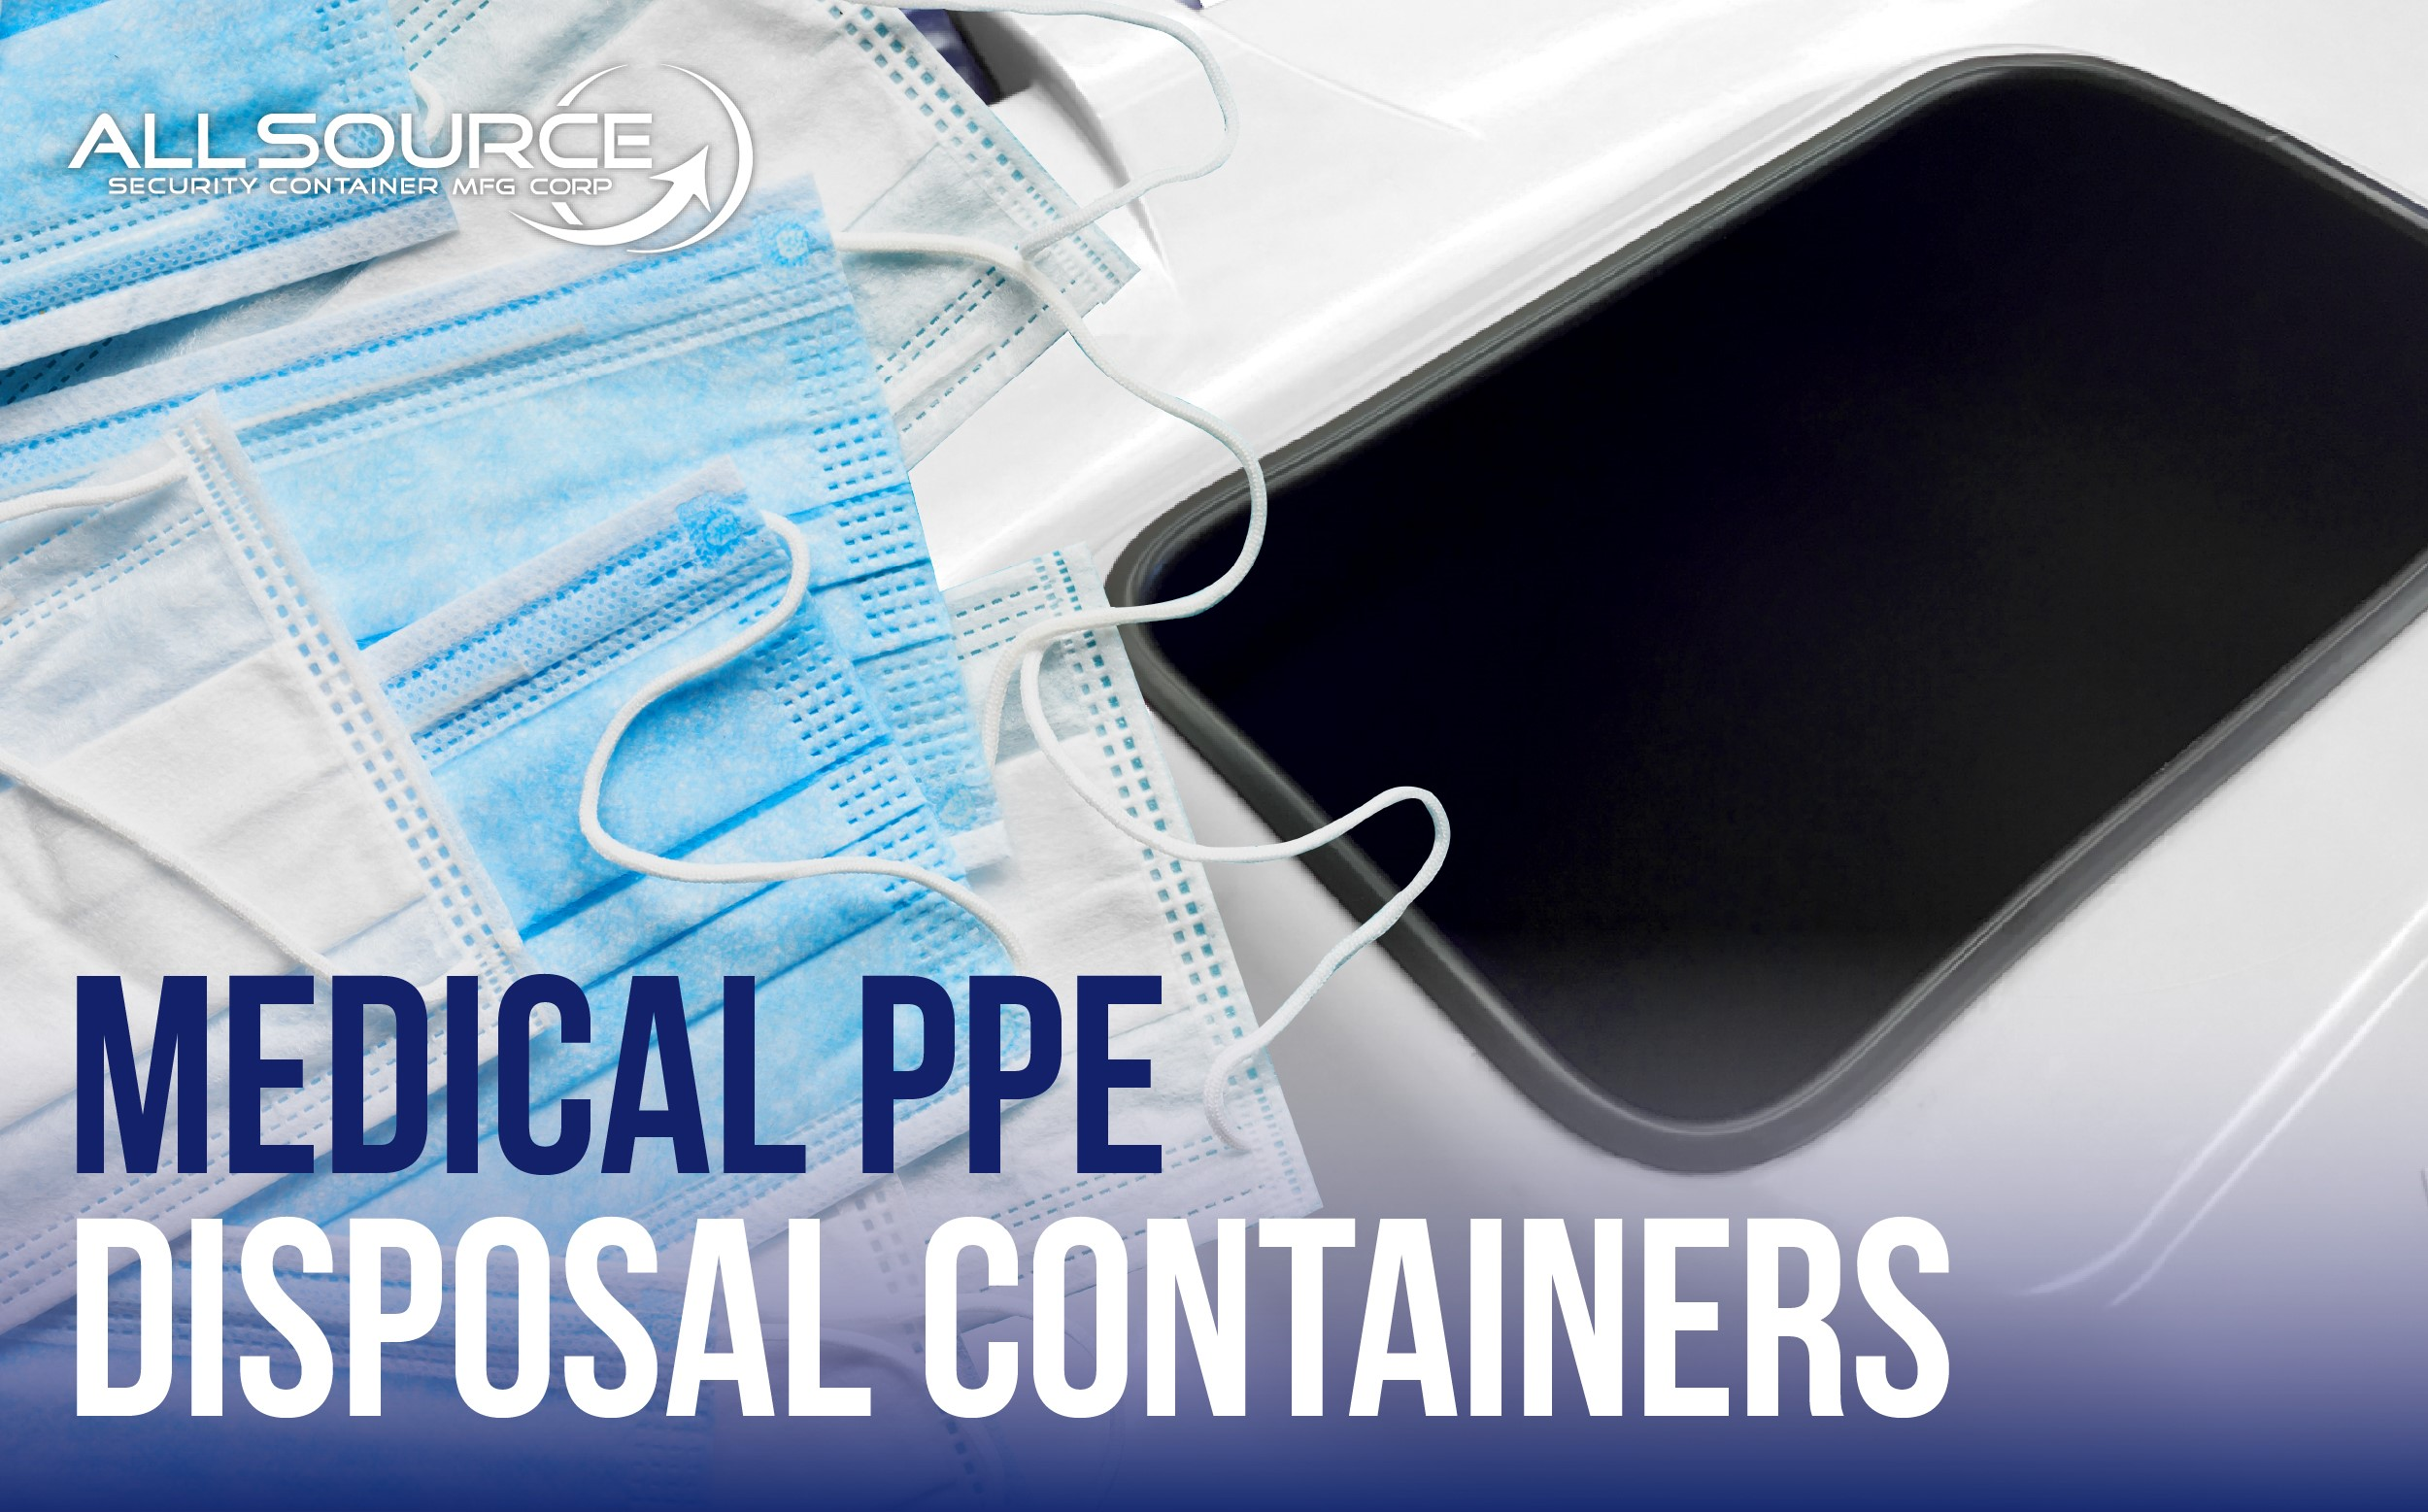 Medical PPE Disposal Containers